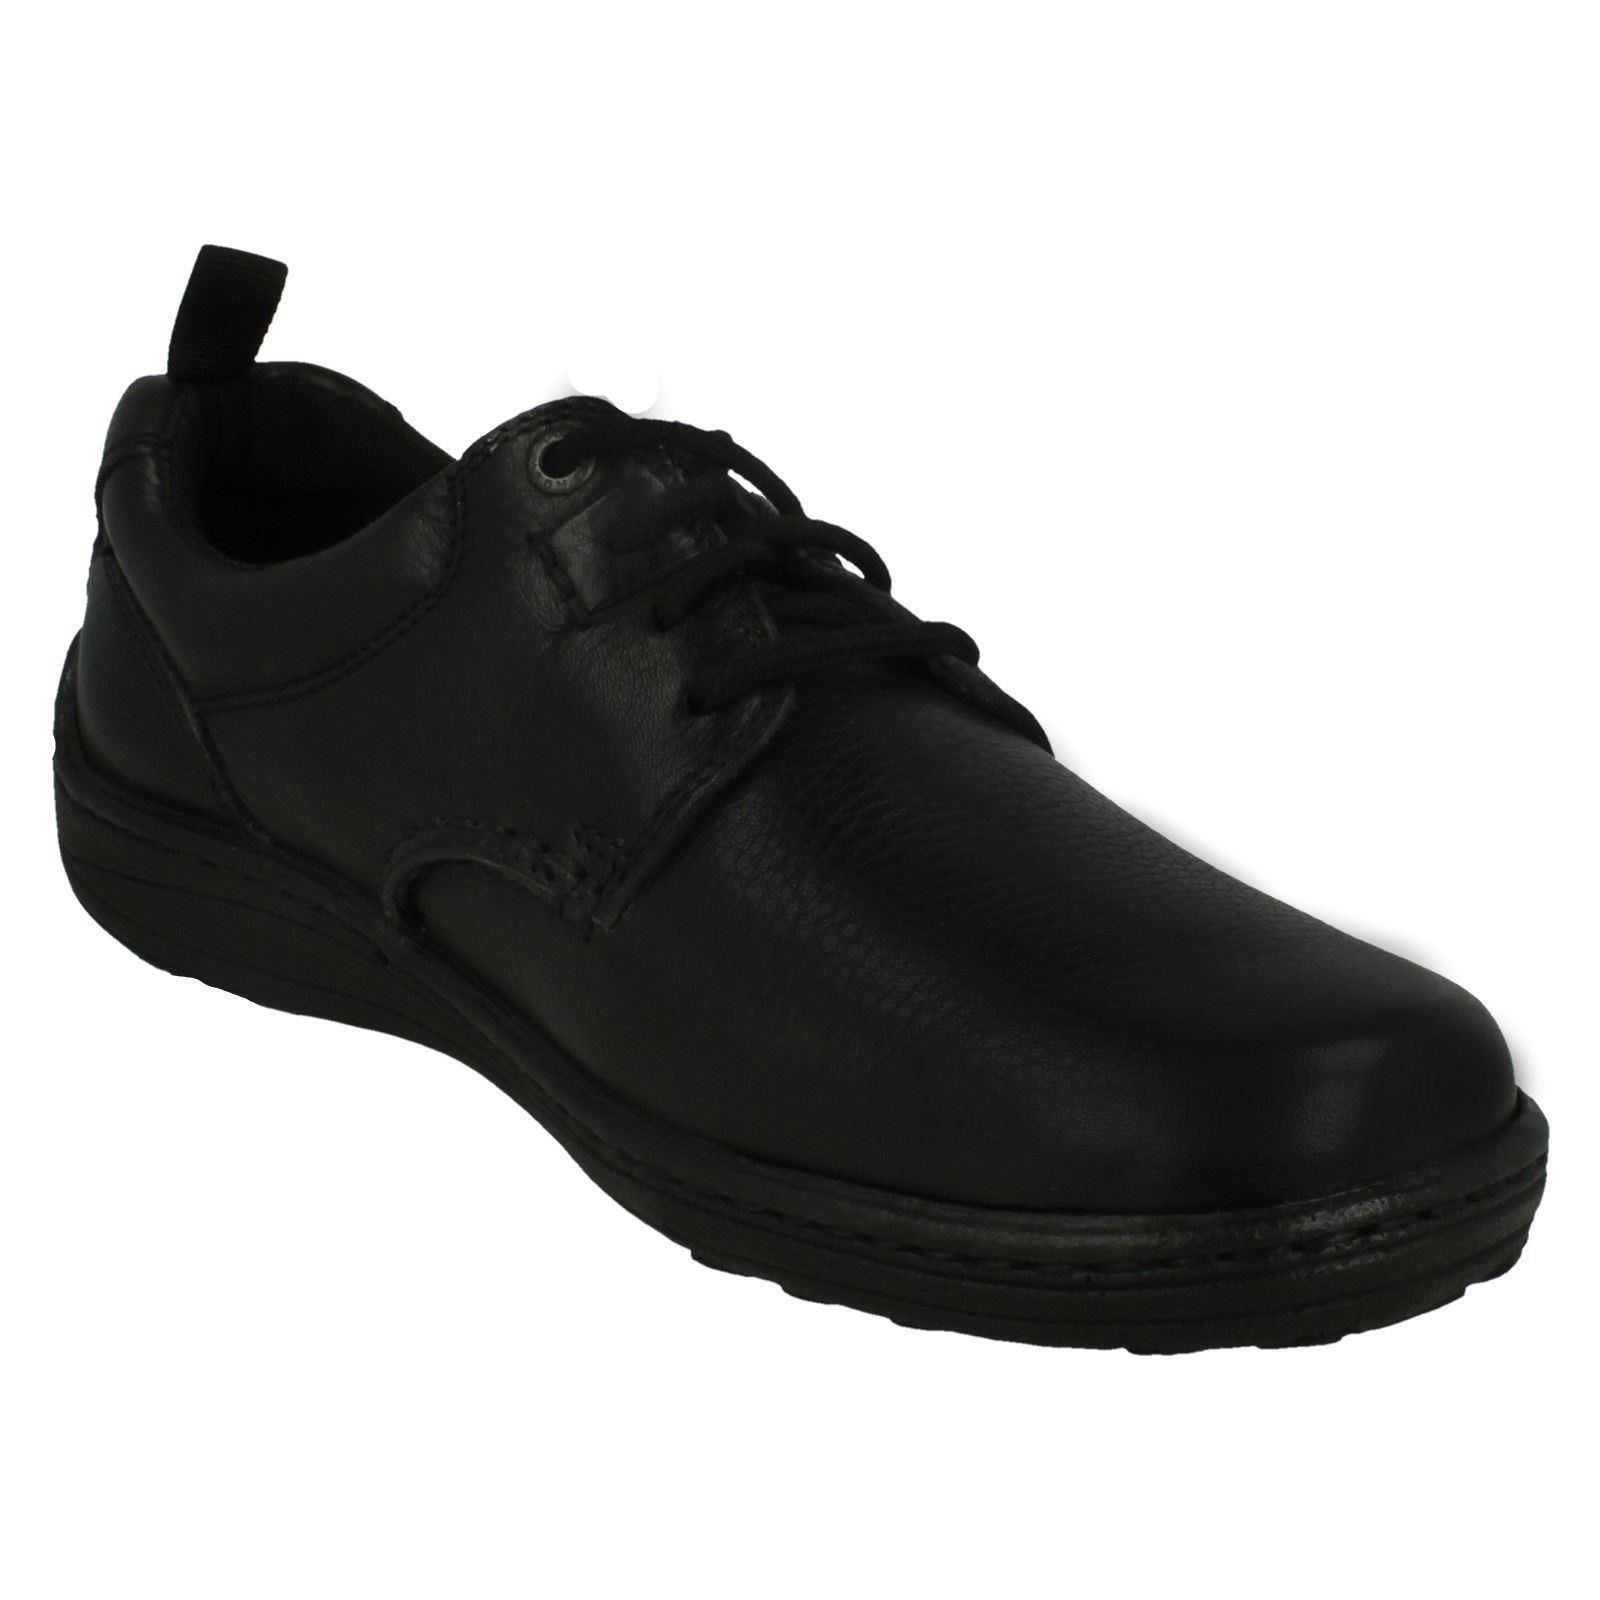 Belfast Lace Hush Puppies Mens Formal Lace Up Shoes